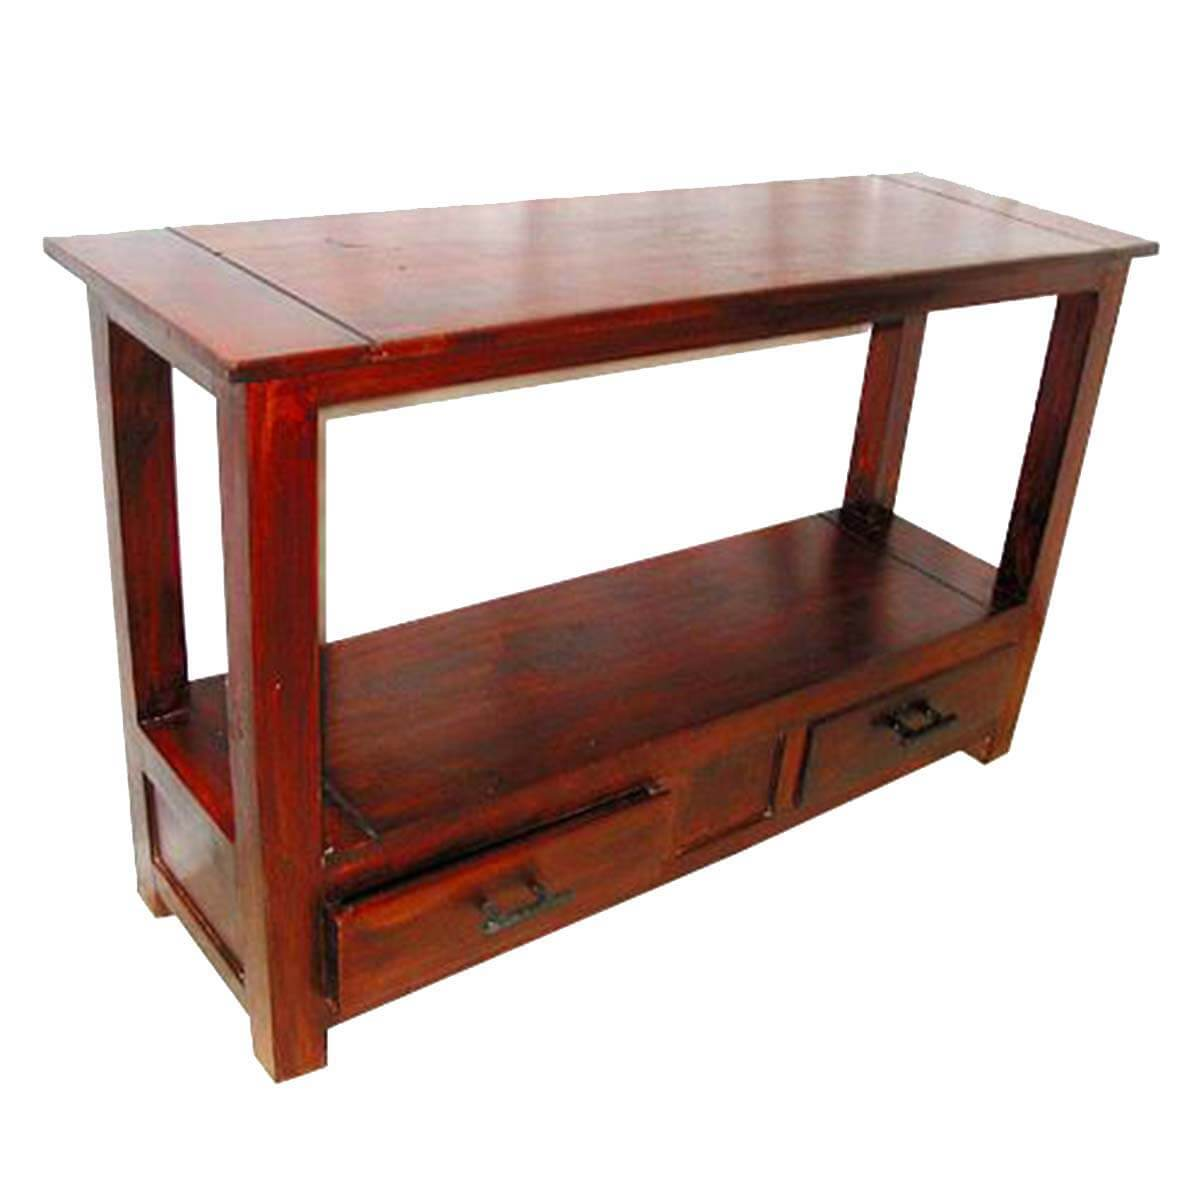 Foyer Table Cabinet : Solid wood console hall entry foyer table furniture